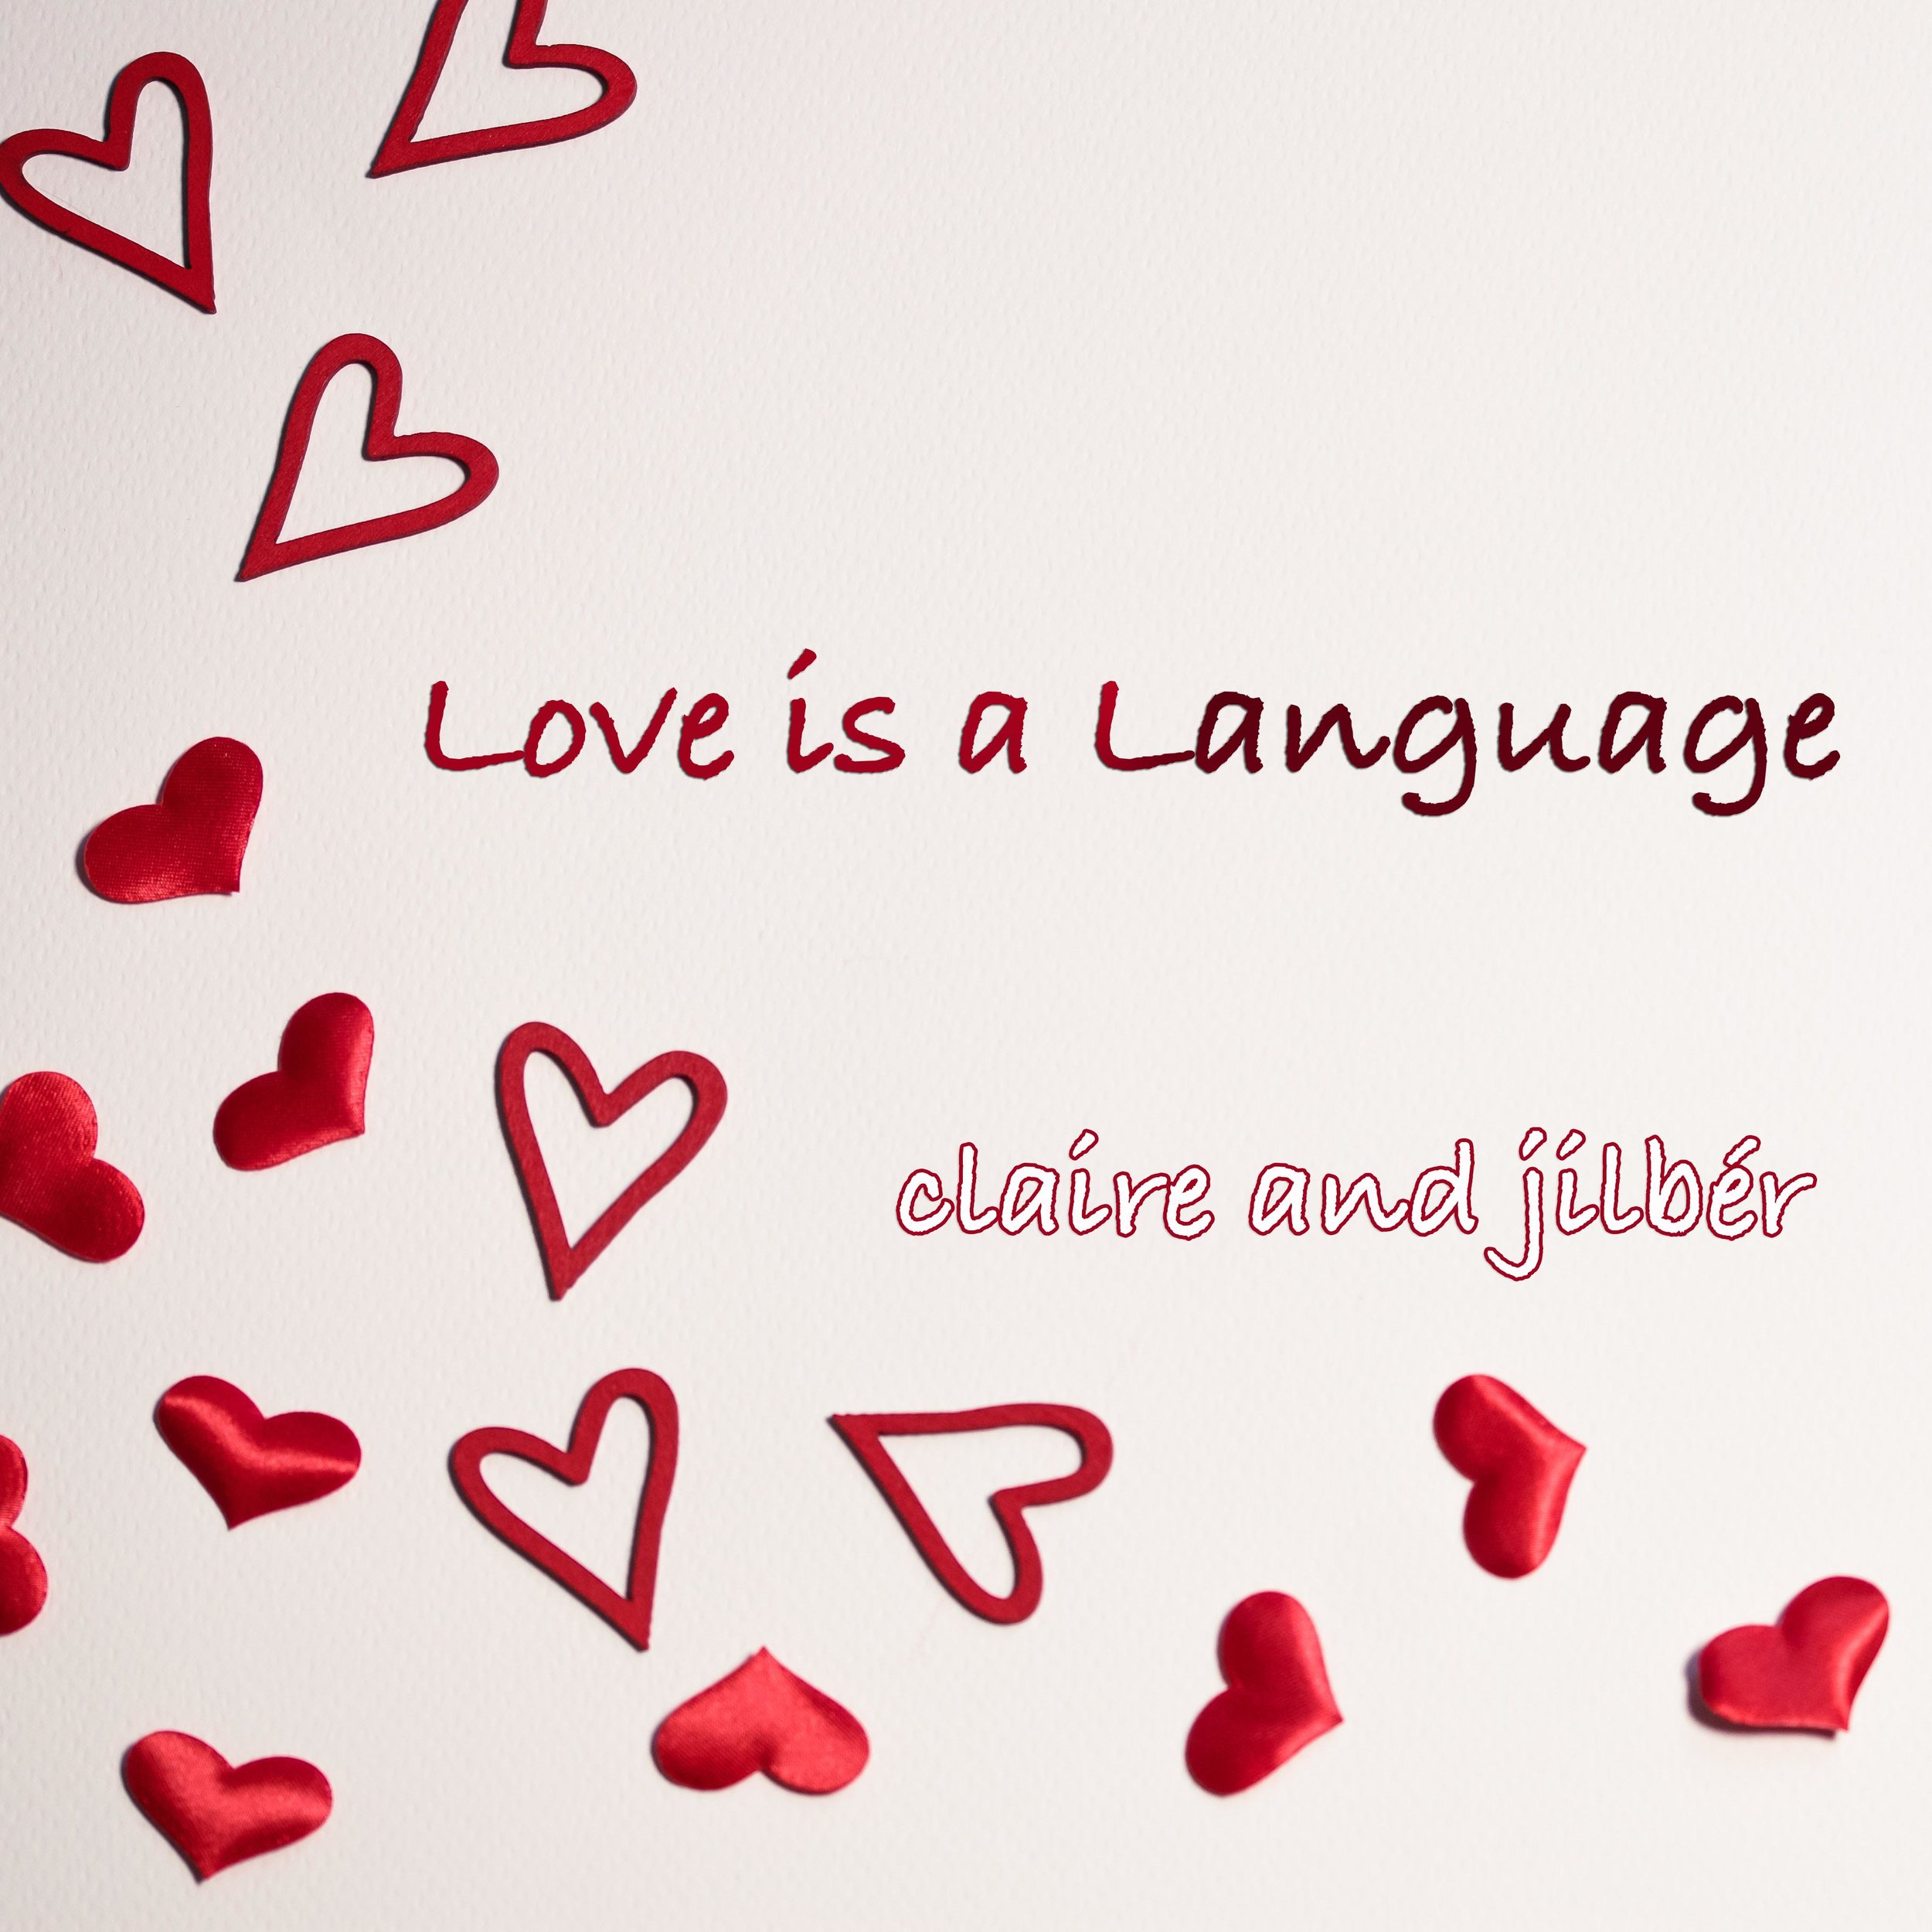 Verse 1 Claire: I say forever I say together Jilber: Je dit toujours toi et moi mon amour  Claire: I say I love you and I'm here to stay Jilber: Je dit je t'aime tu est la creme de la creme  Chorus: Duet: love is a language Love is a flavor I want to savor every moment with you  Love is a language love is a flavor I look in your eyes and I know that it's true.  Verse 2: Claire: I hear you whisper it sends a shiver Jilber: Tu est luxor Tu est haute a couture  Claire: I hear your heartbeat when you call my name Jilber: Je t'end ton cour remplis de colour  Chorus: Duet: love is a language Love is a flavor I want to savor every moment with you  Love is a language love is a flavor I look in your eyes and I know that it's true.  Bridge Jilber: I will be your now And we'll be ever after. Claire: This was meant to be Something like destiny And I will always know your mind  Chorus B Jilber: Love is a blanket Love is an arrow Love is so easy when I do it with you  Chorus A Claire: love is a language Love is a flavor I want to savor every moment with you  Love is a language love is a flavor I look in your eyes and I know that it's true.  Duet: love is a language Love is a flavor I want to savor every moment with you Yes I want to savor every moment with you Claire: et je dit je t'aime Jilber: and I do too